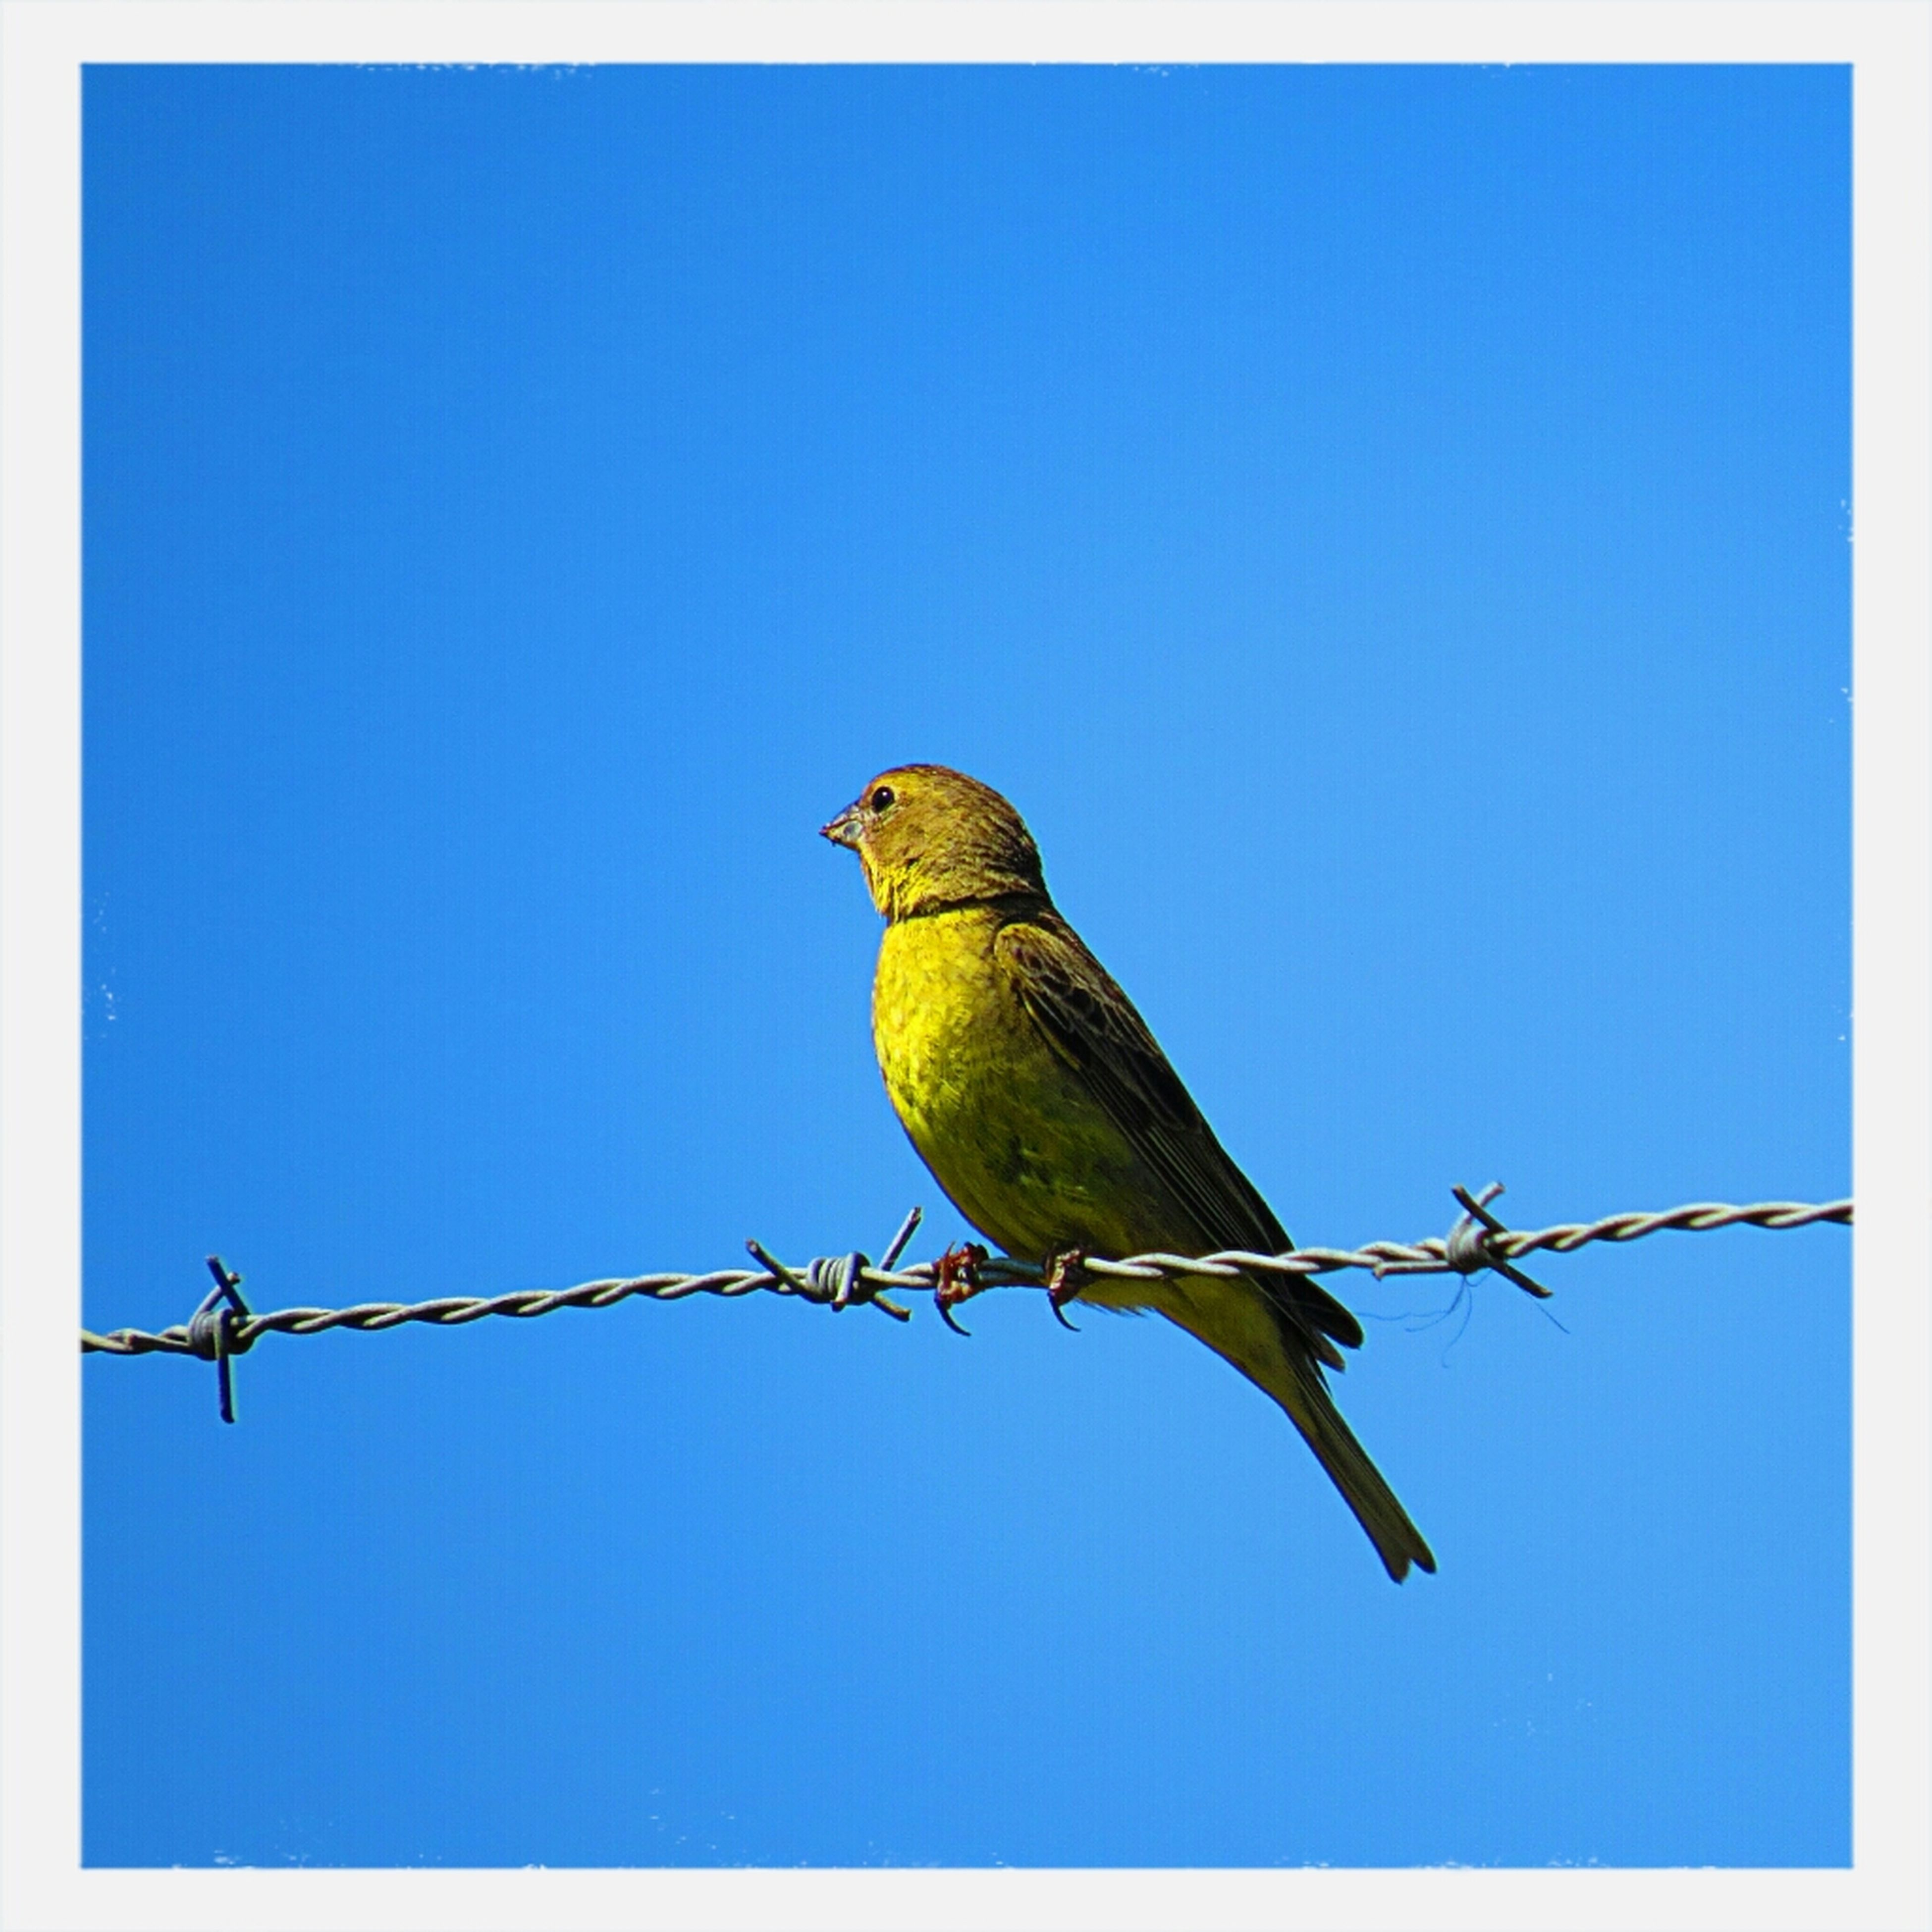 animal themes, bird, animals in the wild, wildlife, one animal, perching, clear sky, low angle view, full length, blue, copy space, zoology, nature, day, outdoors, no people, branch, side view, spread wings, green color